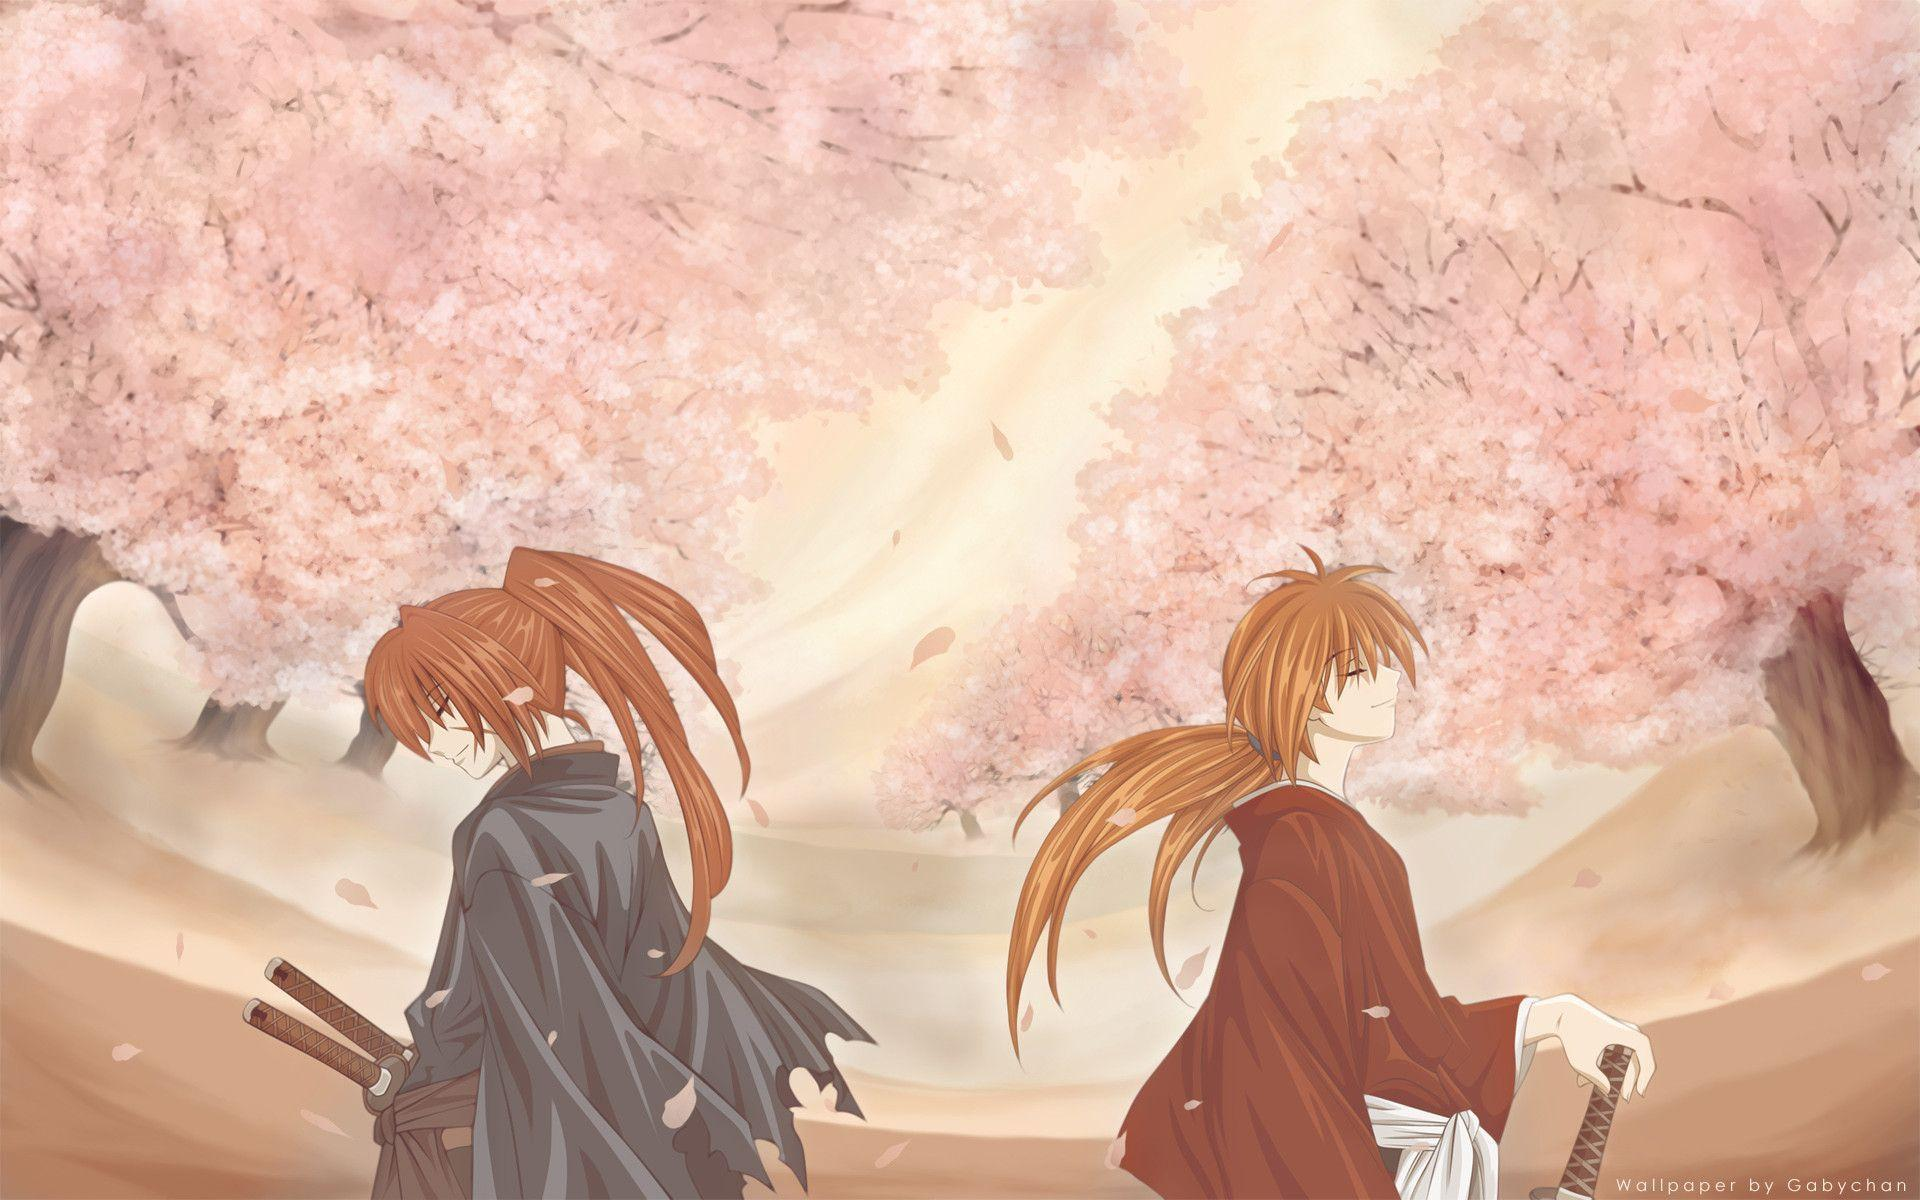 kenshin himura wallpaper - photo #5